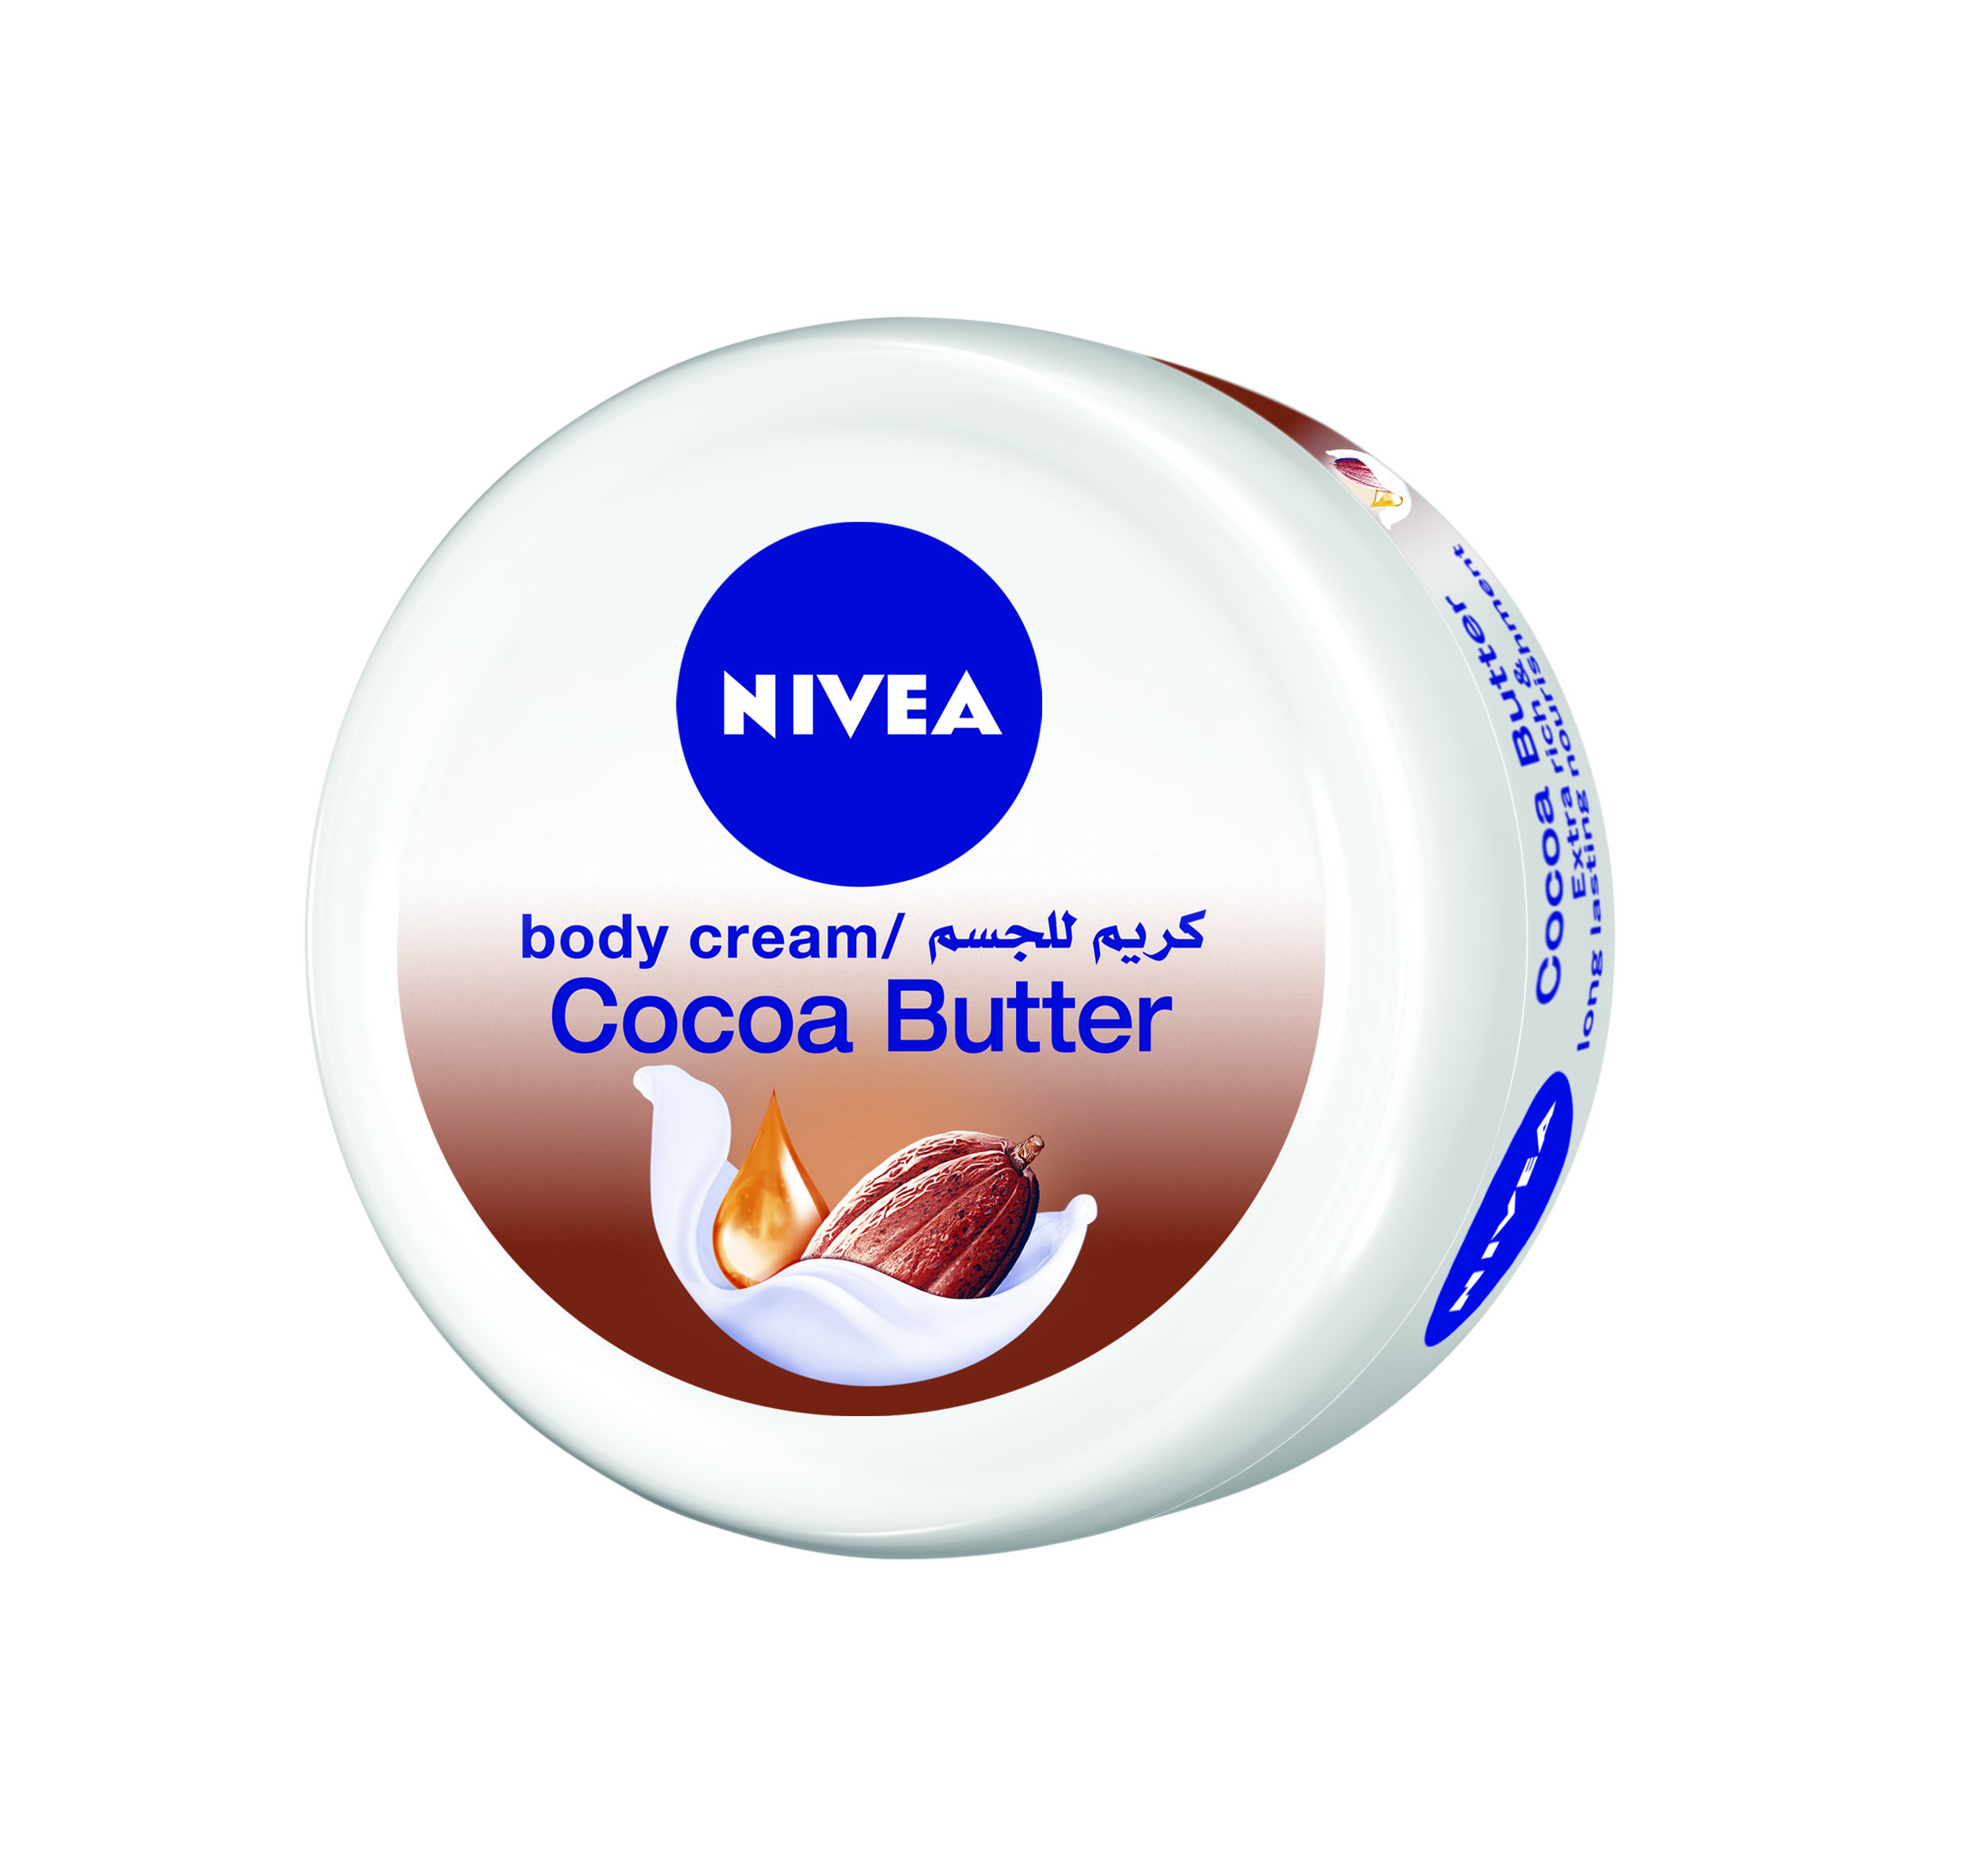 The Nivea Cocoa Butter Cream